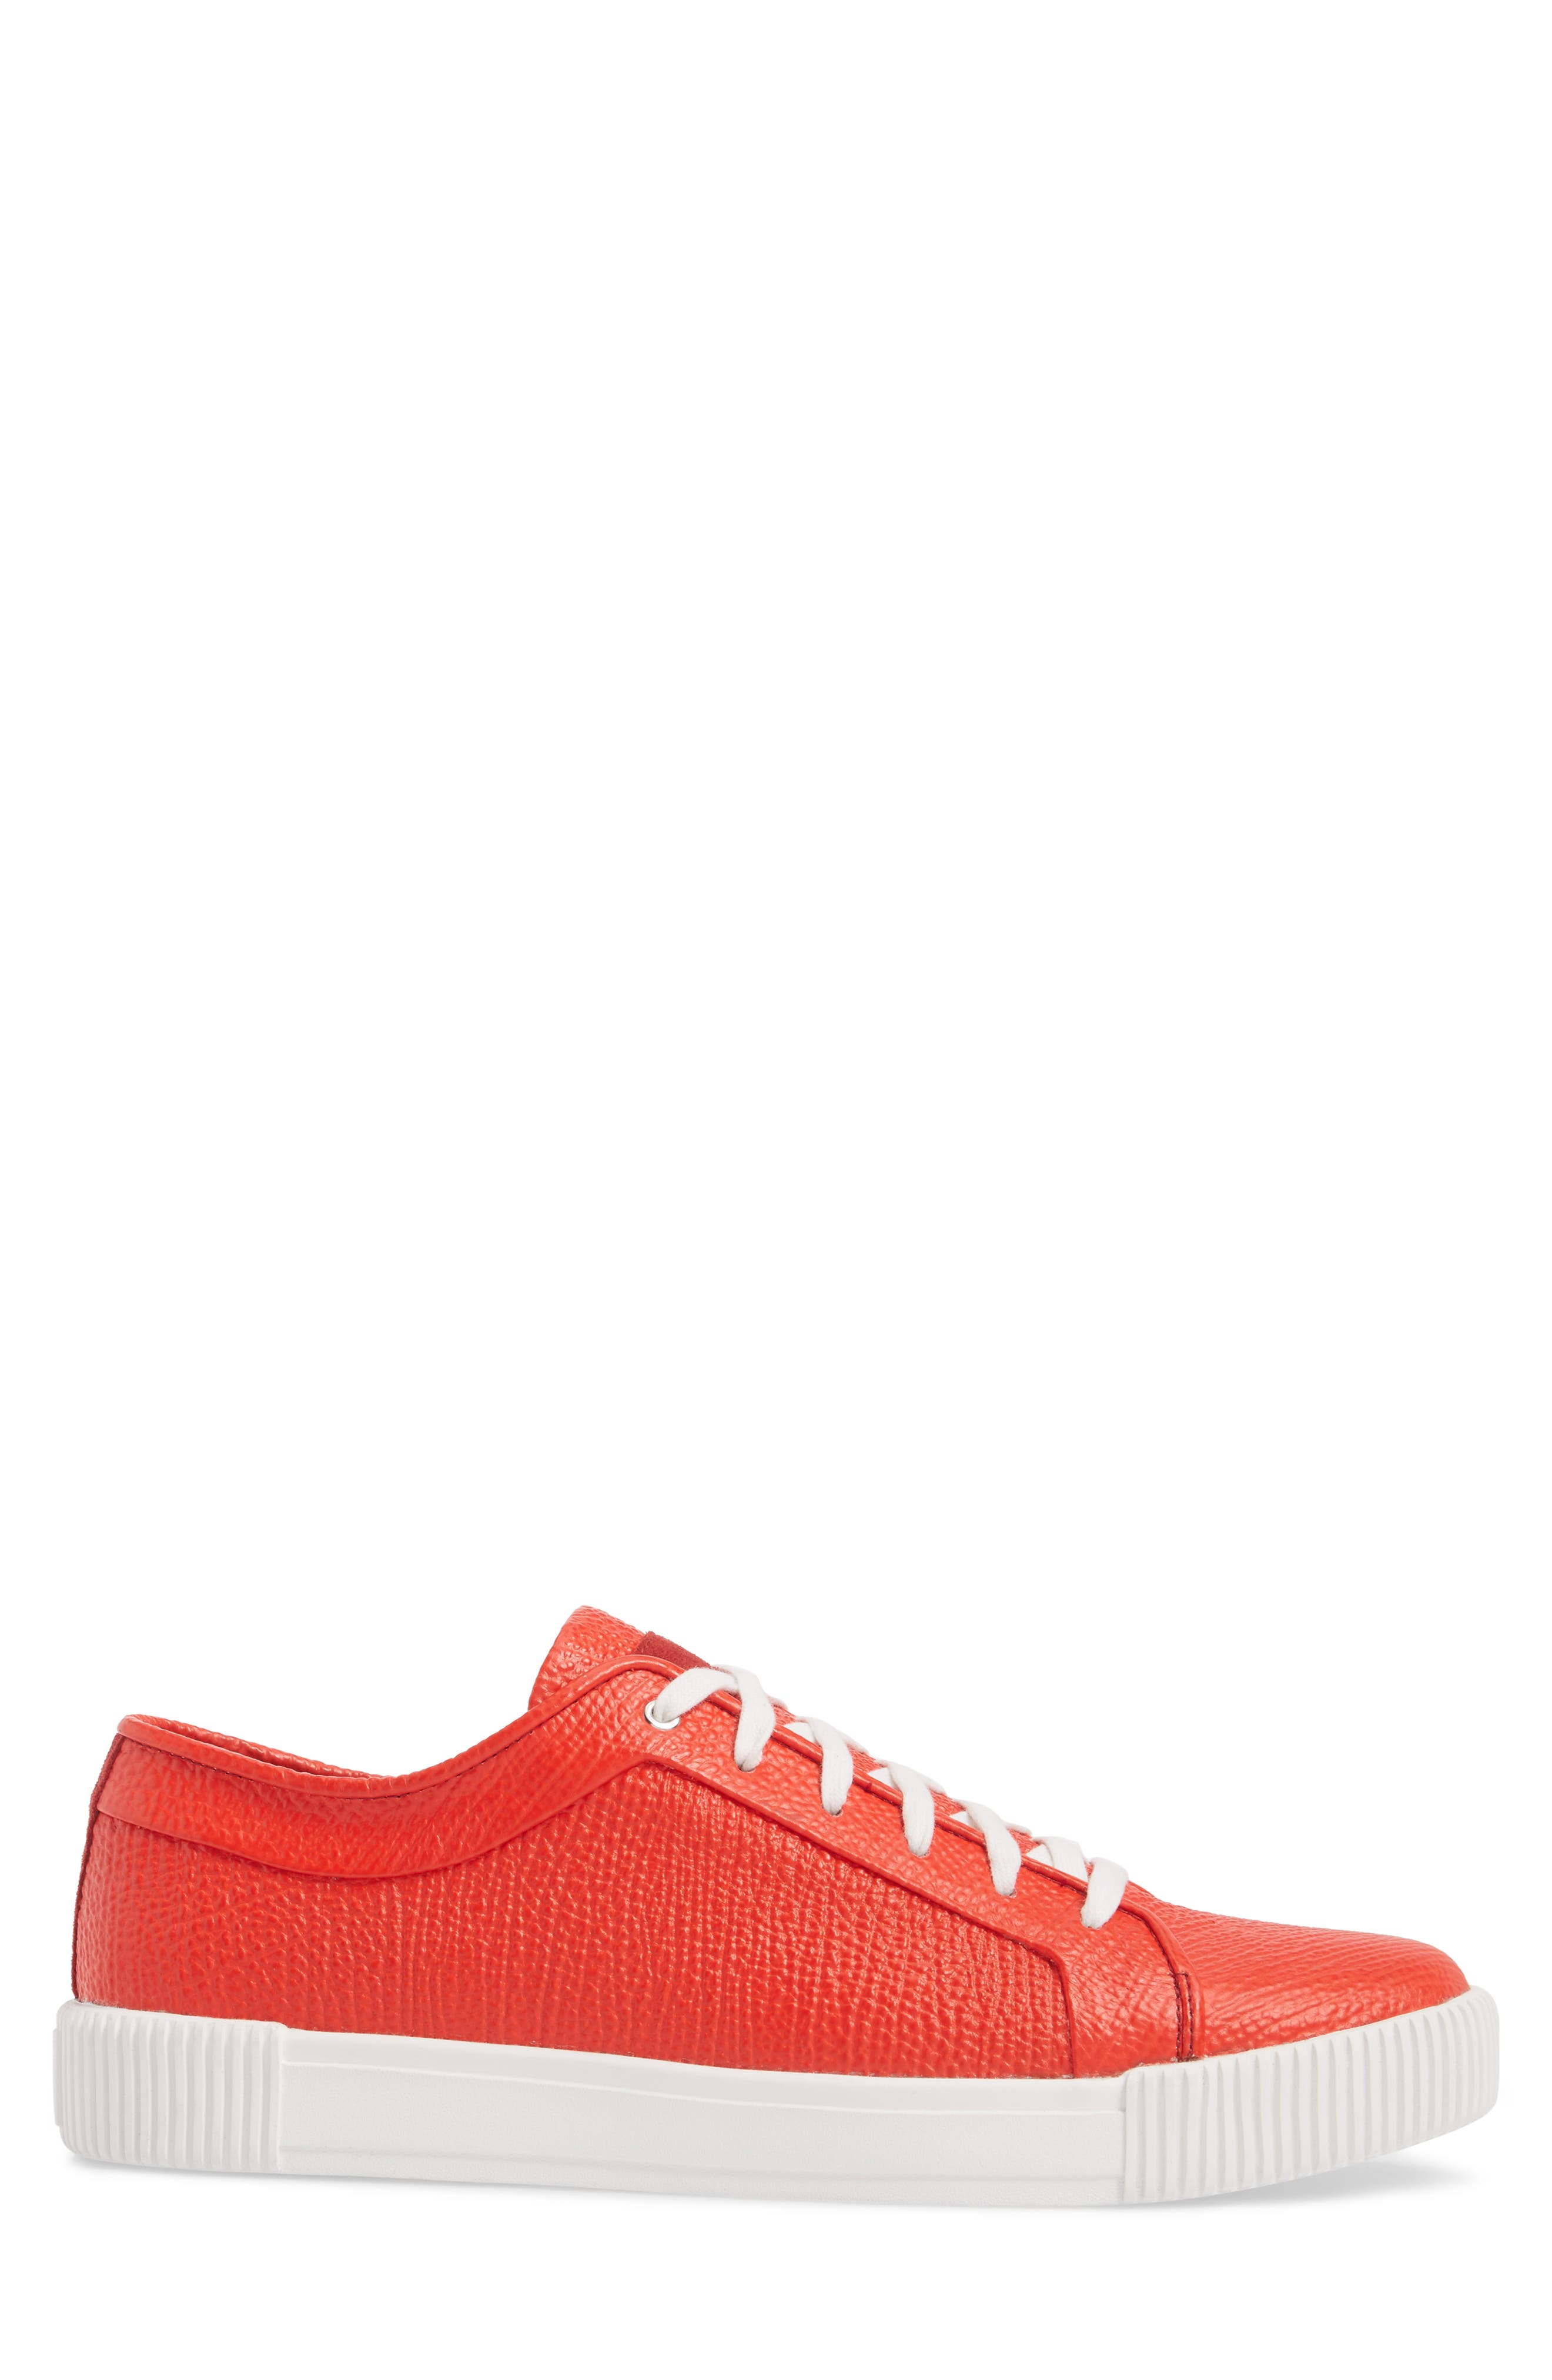 Lyons Low Top Sneaker,                             Alternate thumbnail 3, color,                             Red Leather